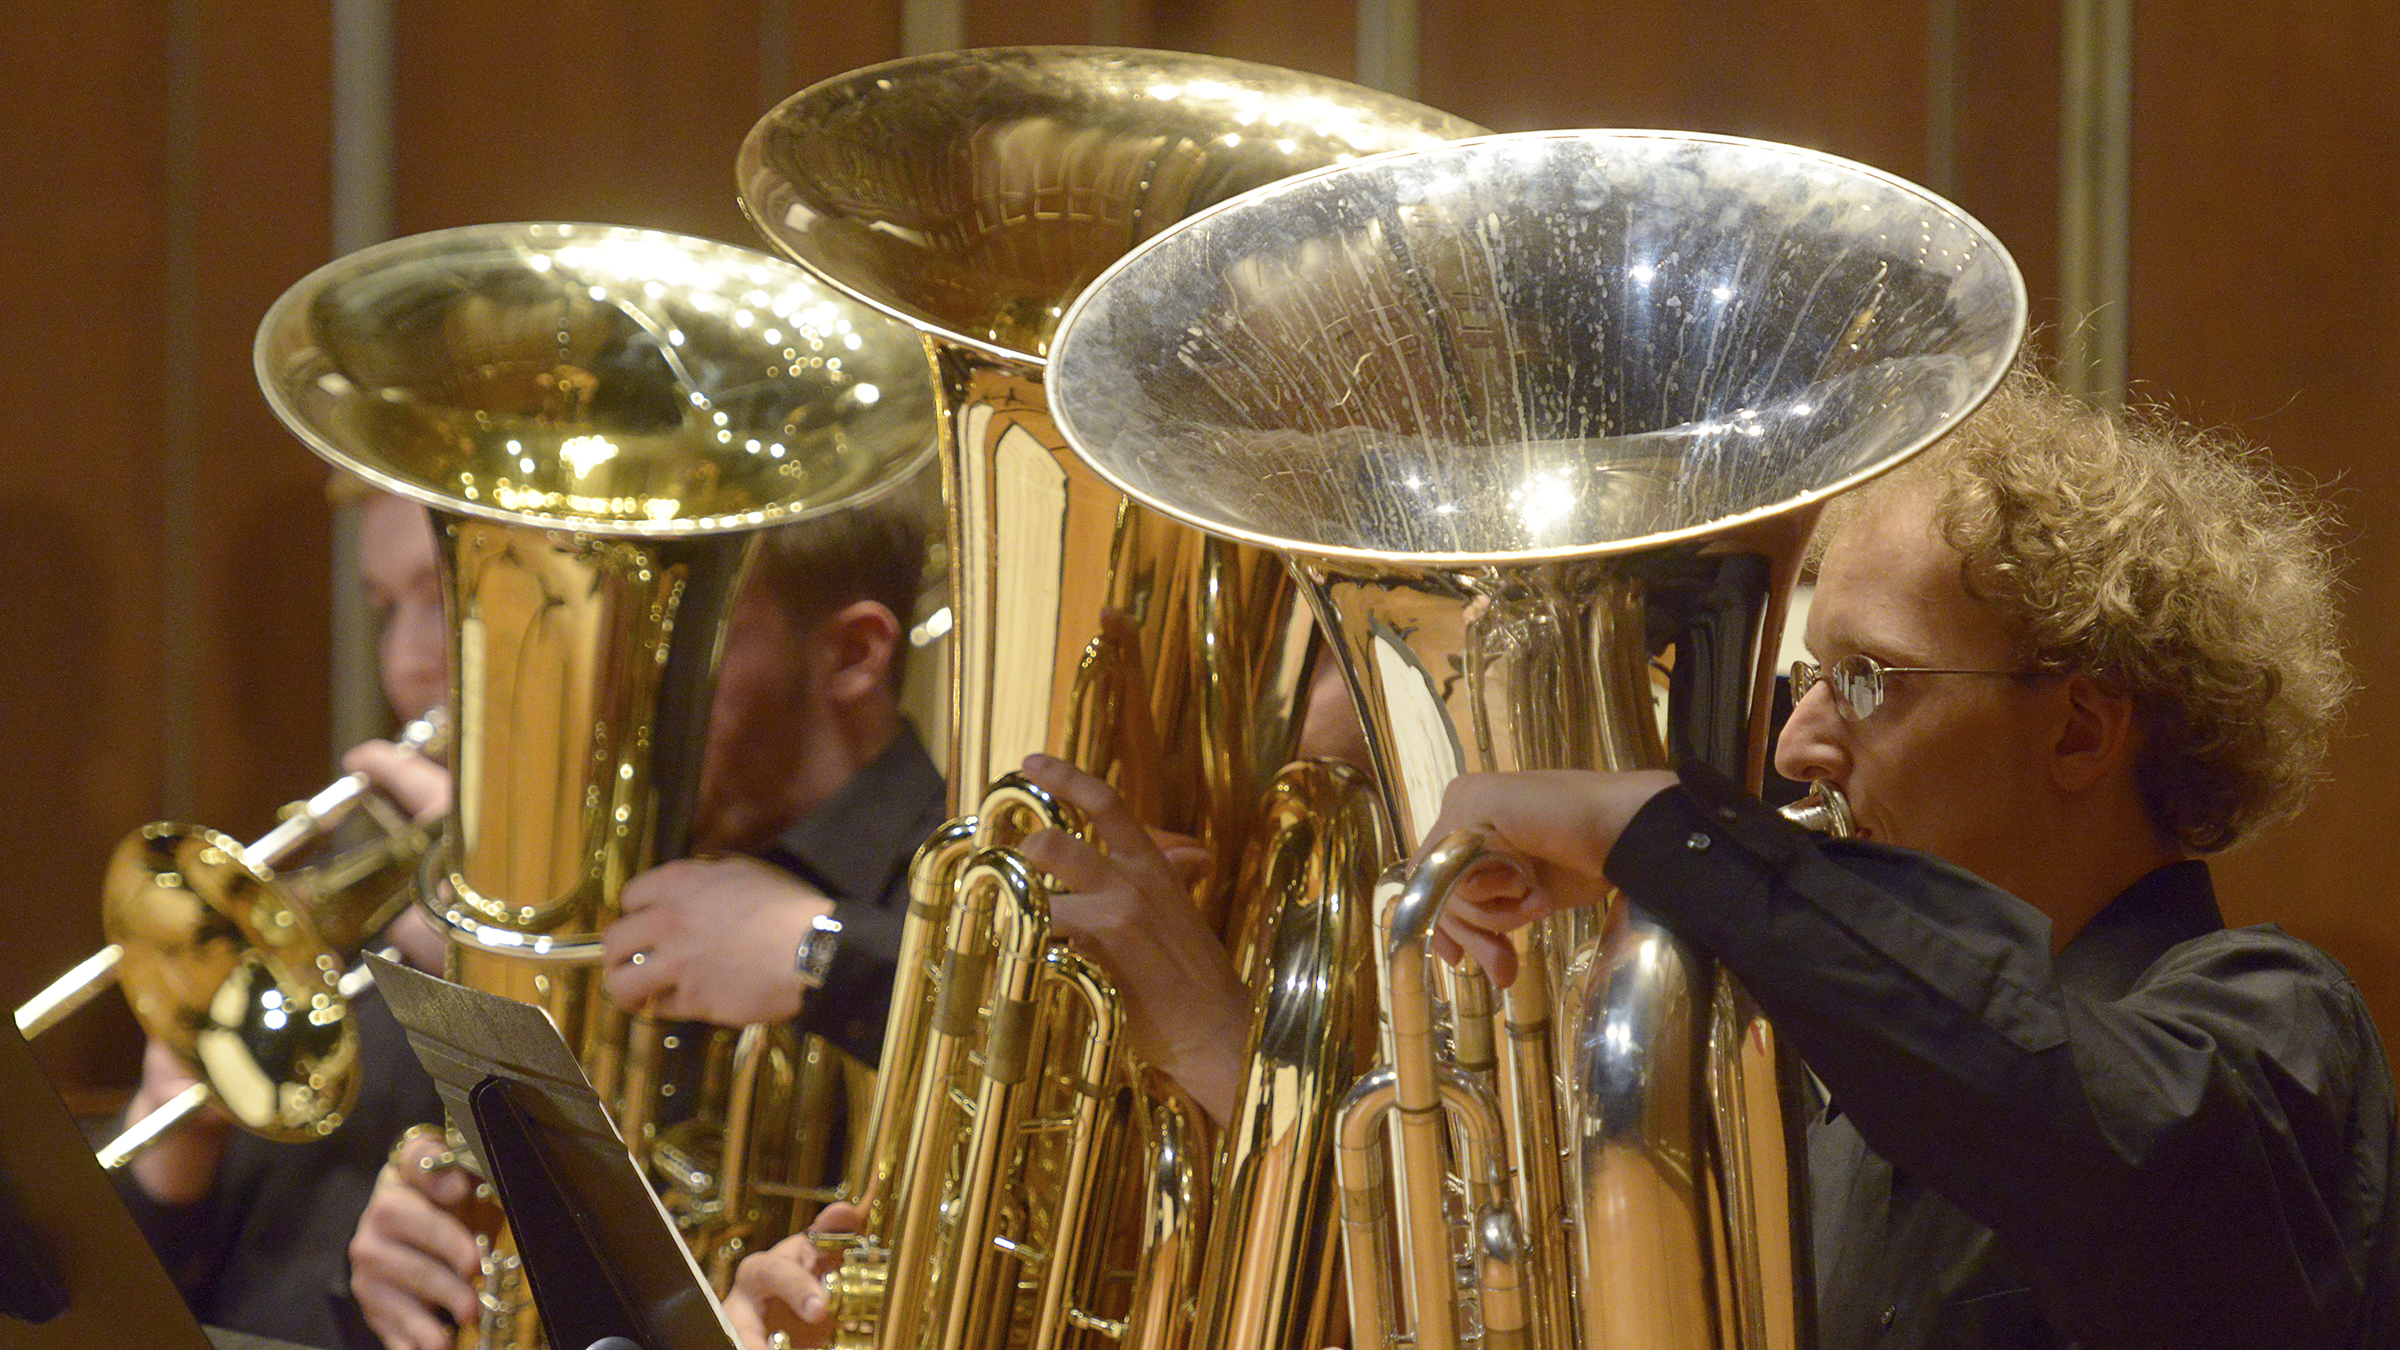 Tubas in performance